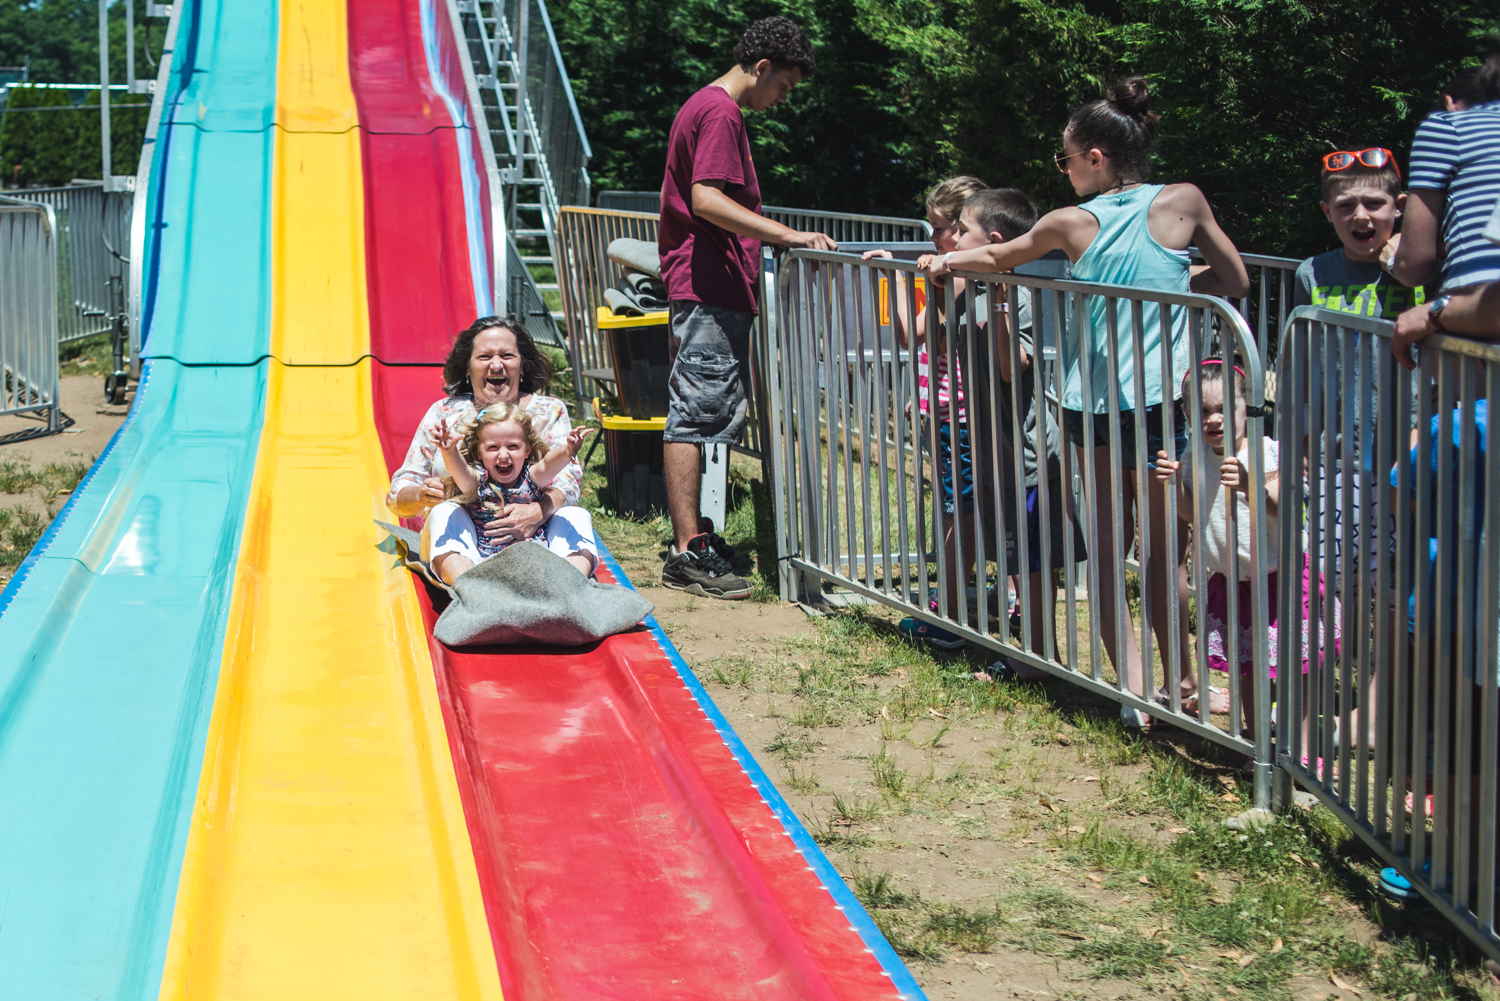 Going down the big slide at the beer garden on Father's Day.